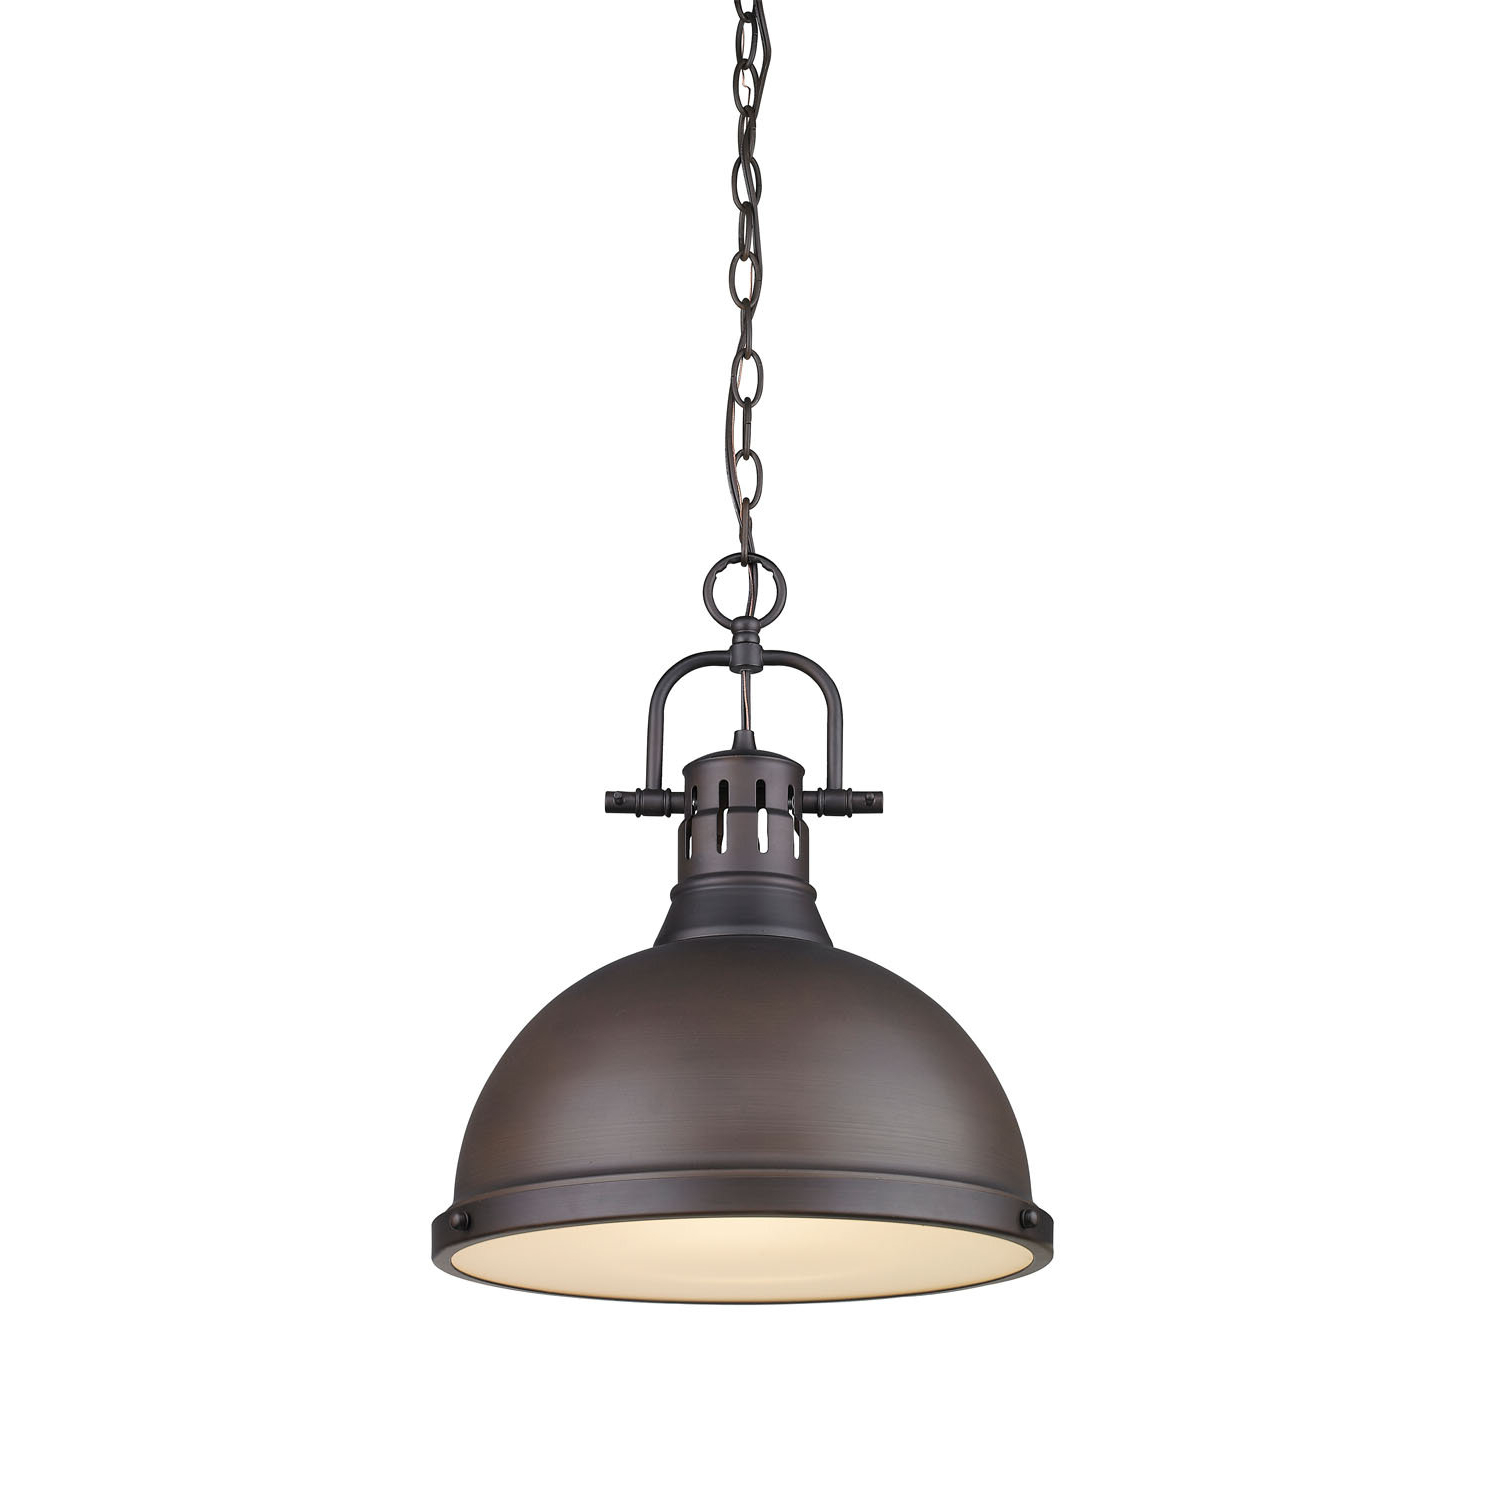 Most Recently Released Bodalla 1 Light Single Dome Pendant Inside Bodalla 1 Light Single Bell Pendants (Gallery 10 of 20)